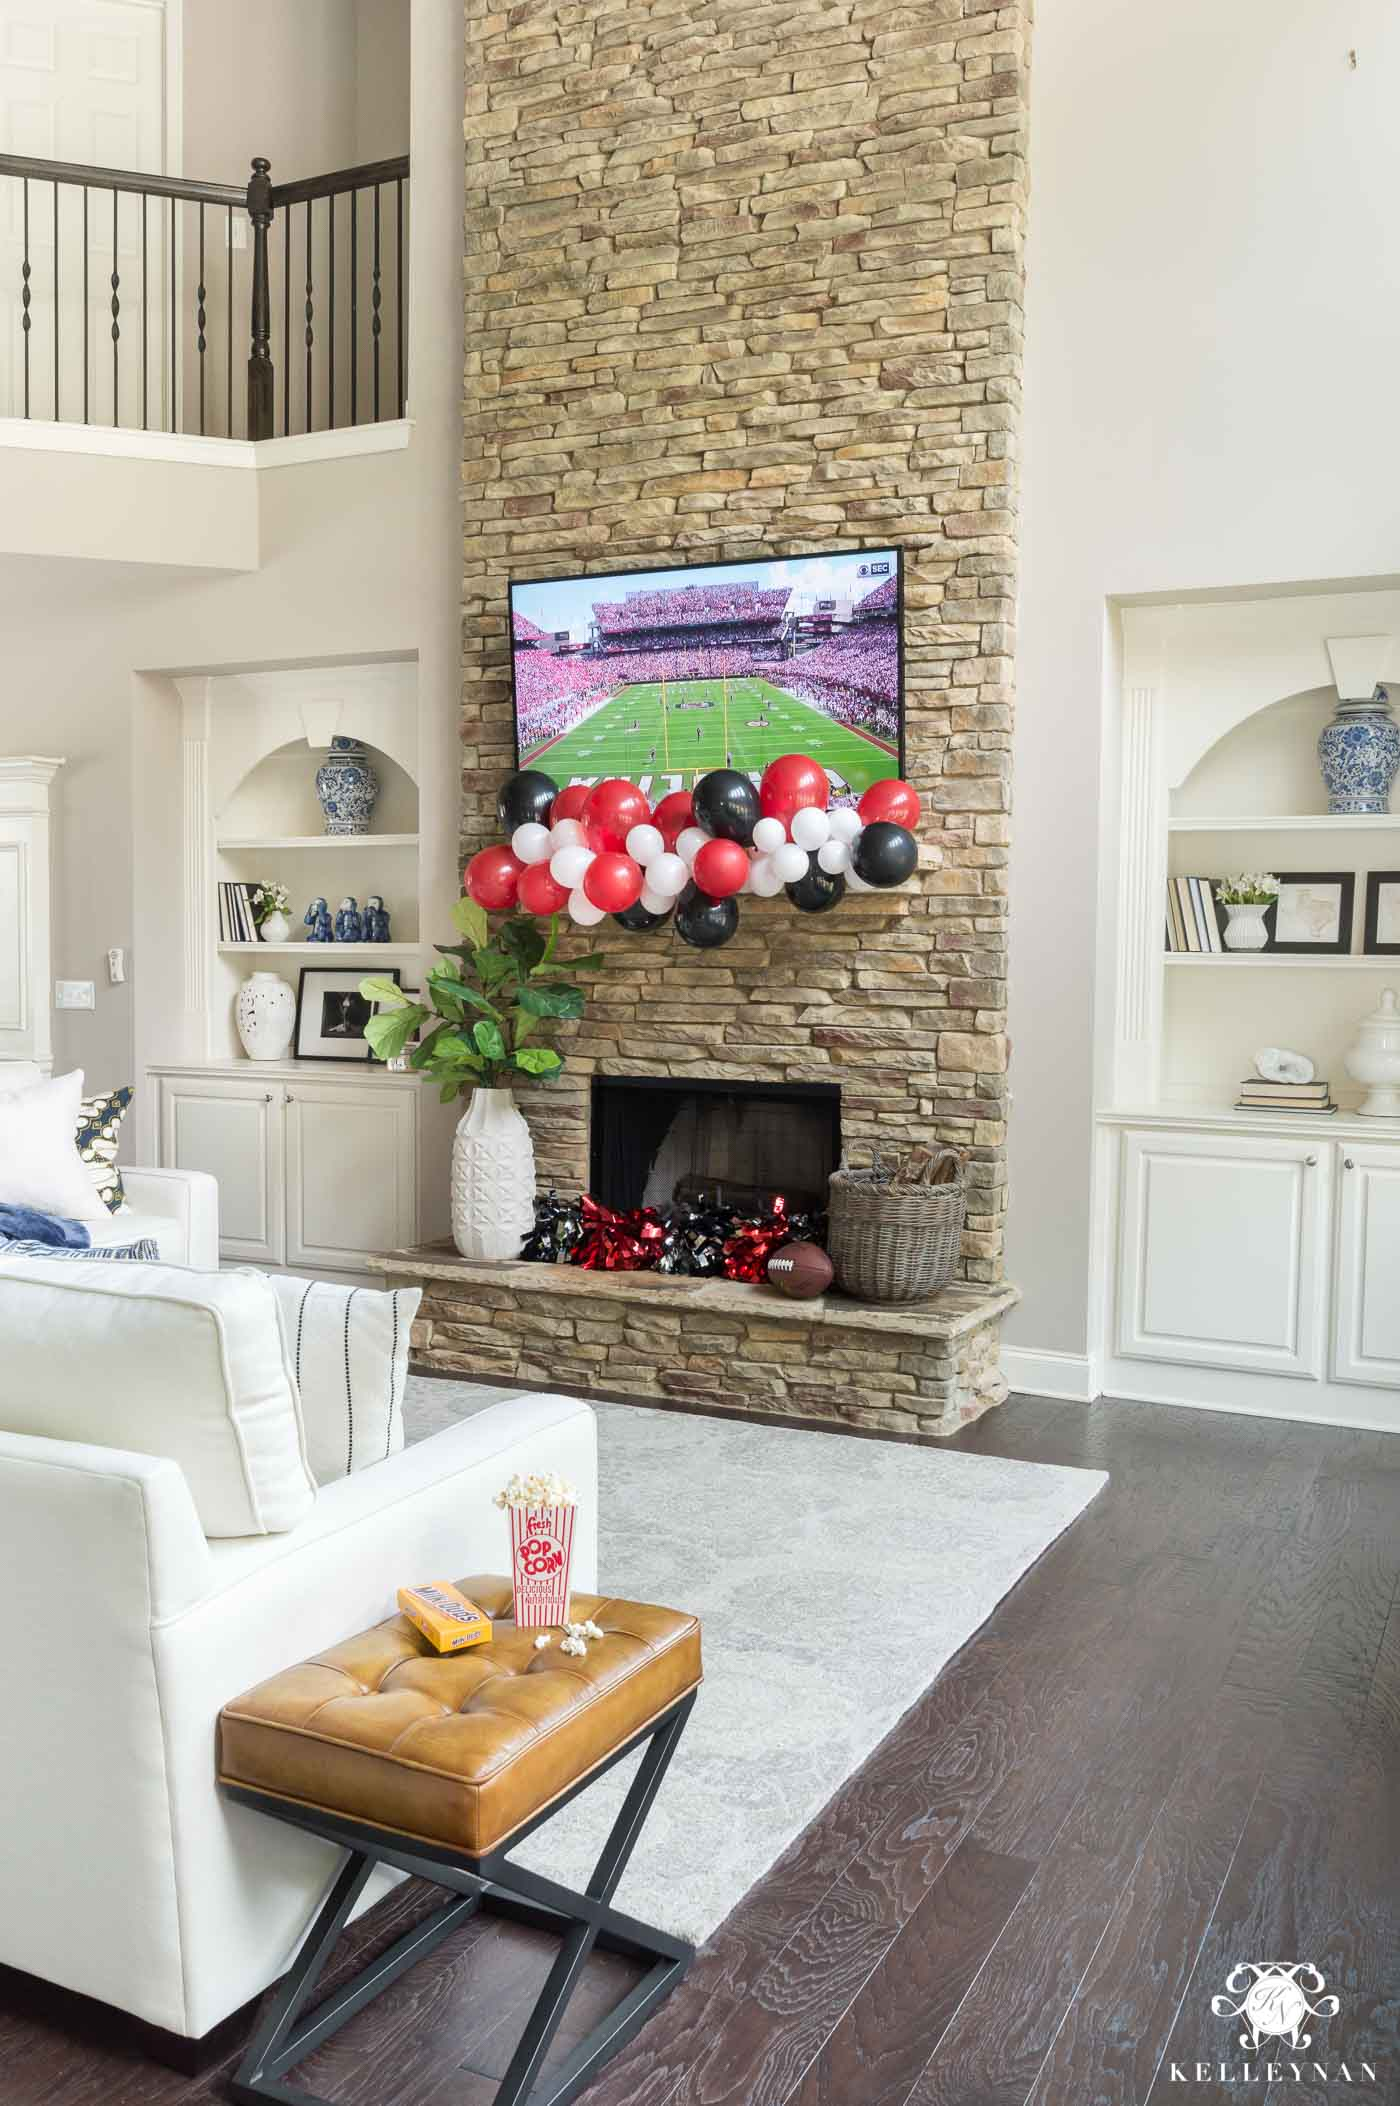 Tailgate party at home with hosting ideas